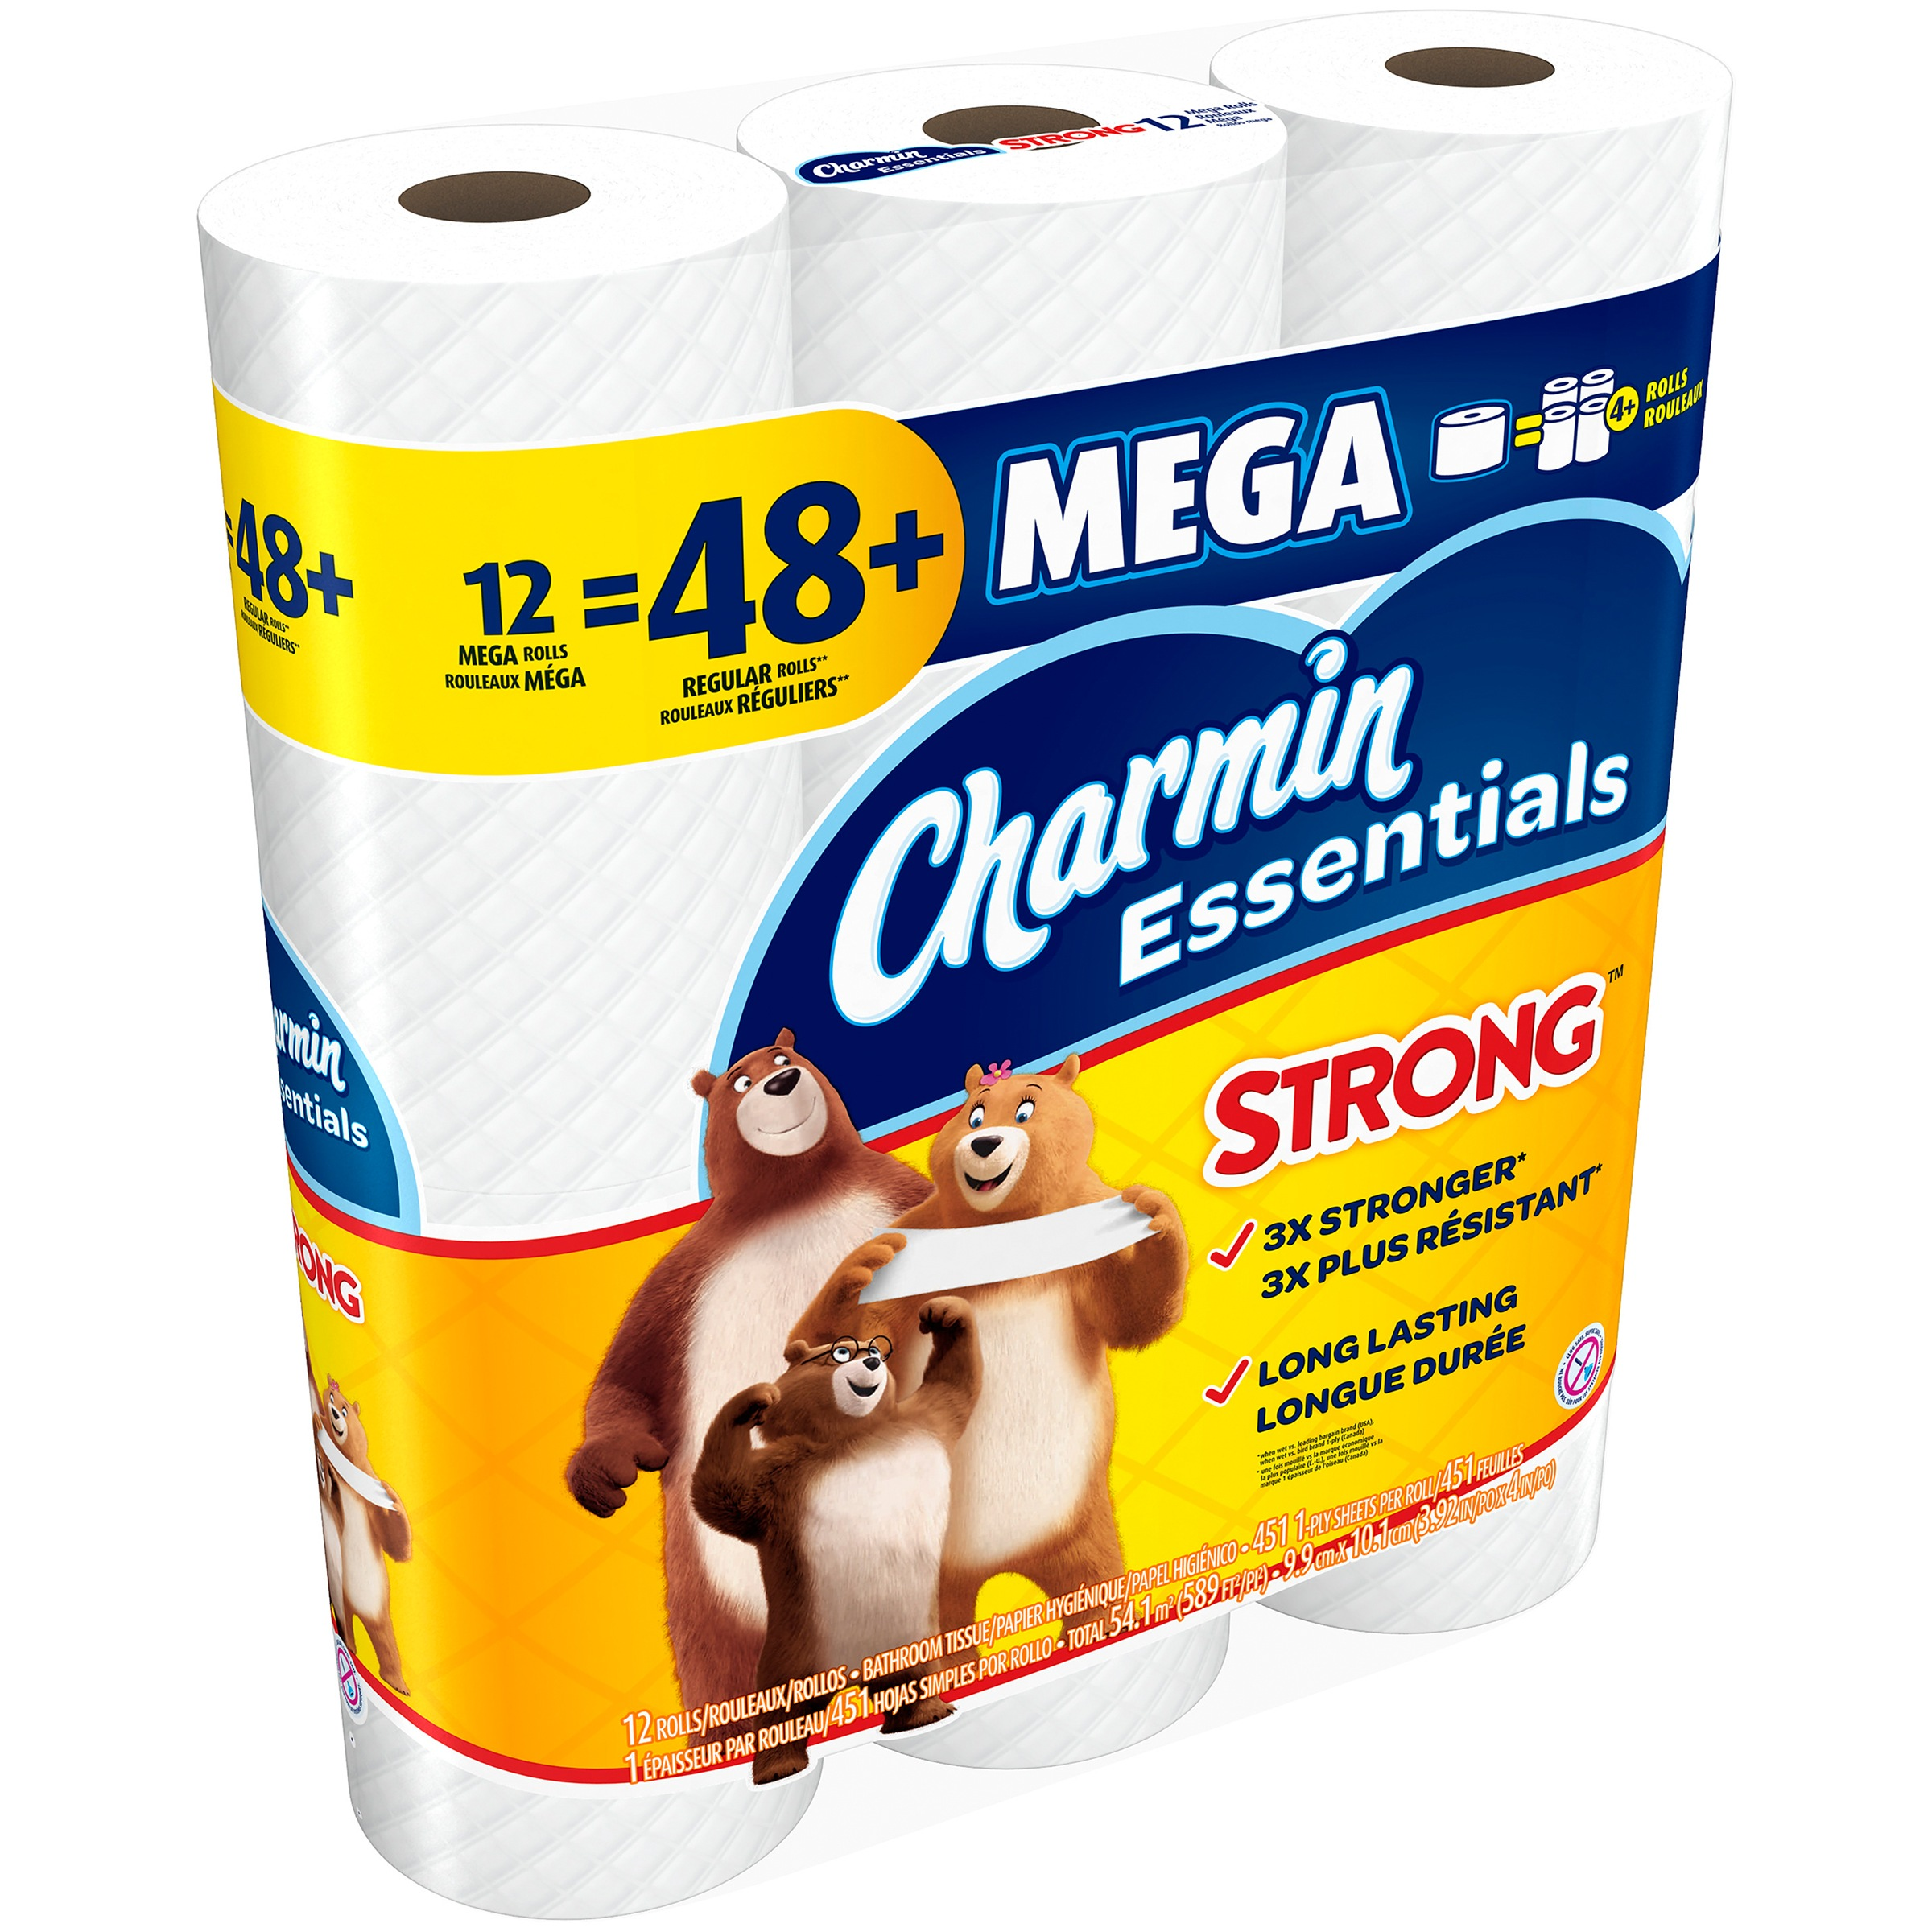 Charmin Essentials Strong Toilet Paper, 12 mega rolls by Procter & Gamble